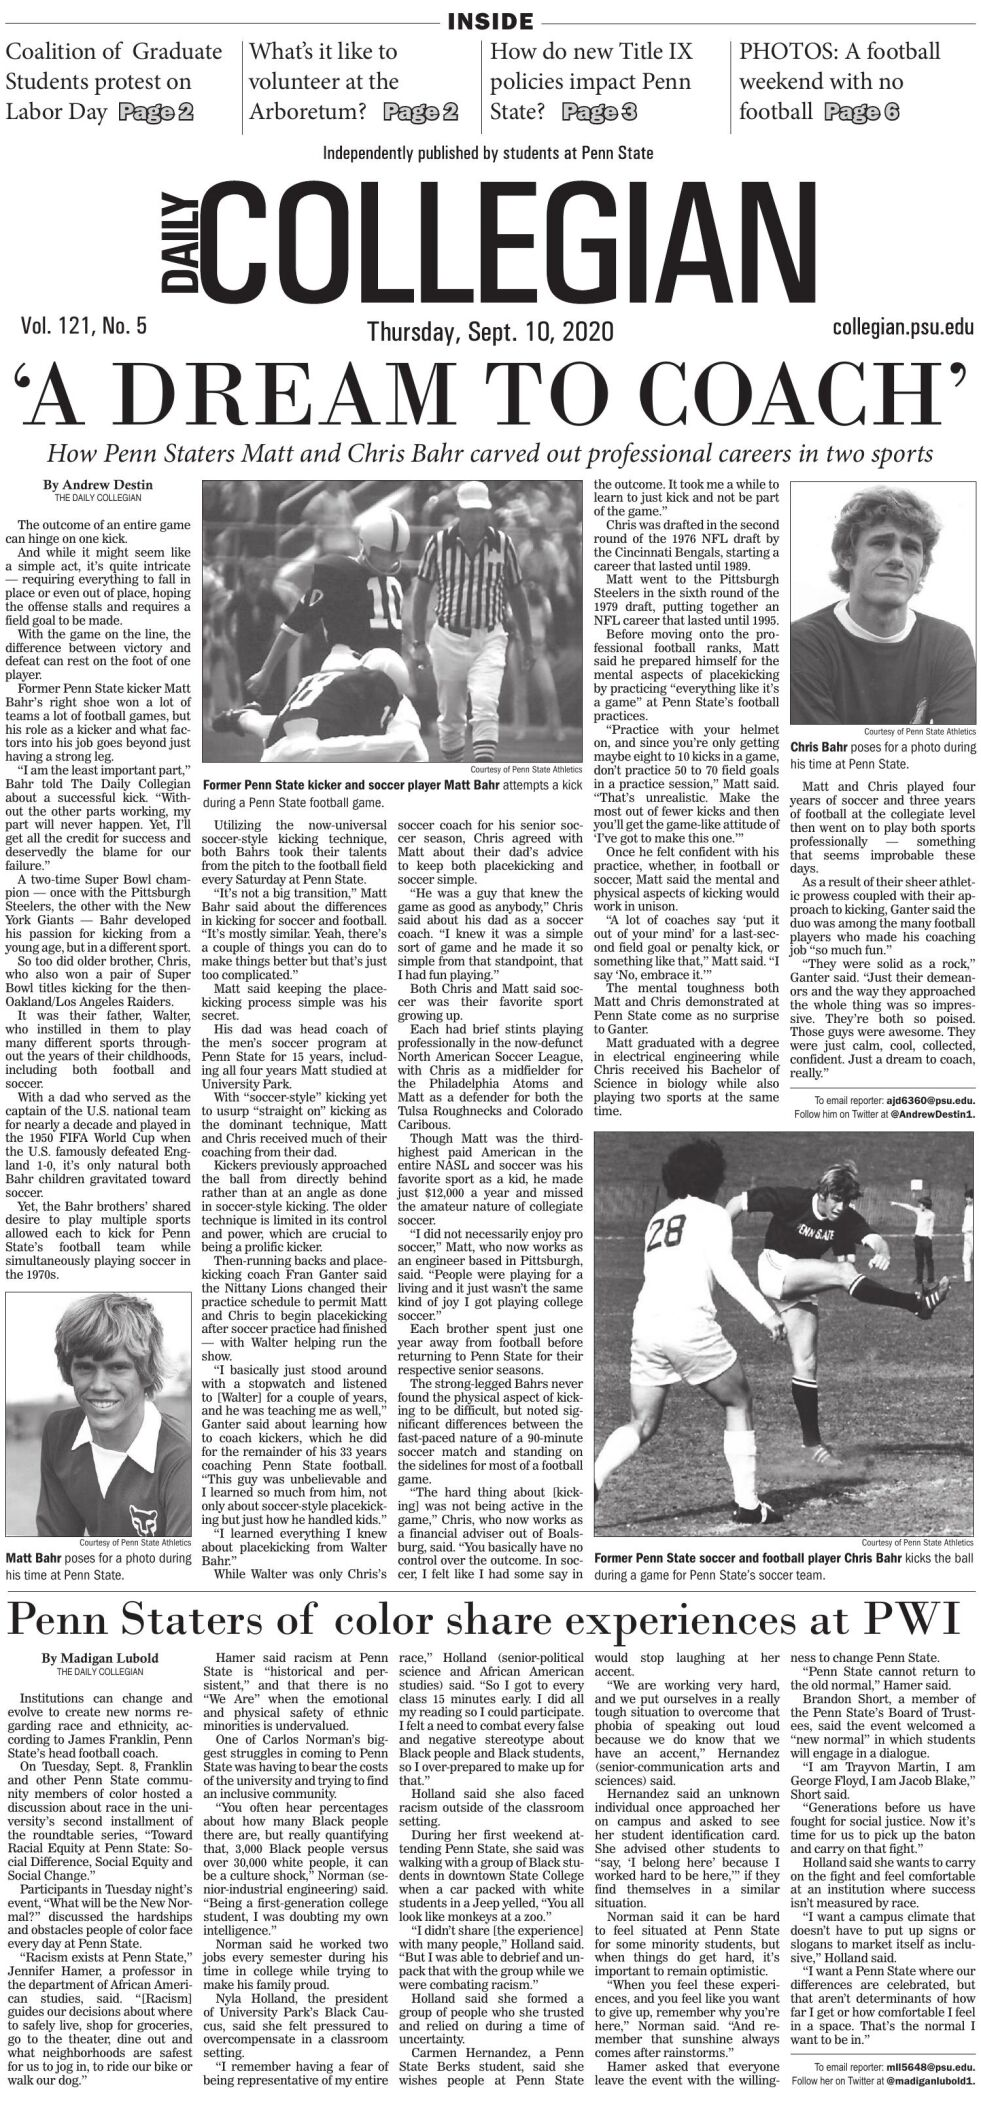 The Daily Collegian for Sept. 10, 2020